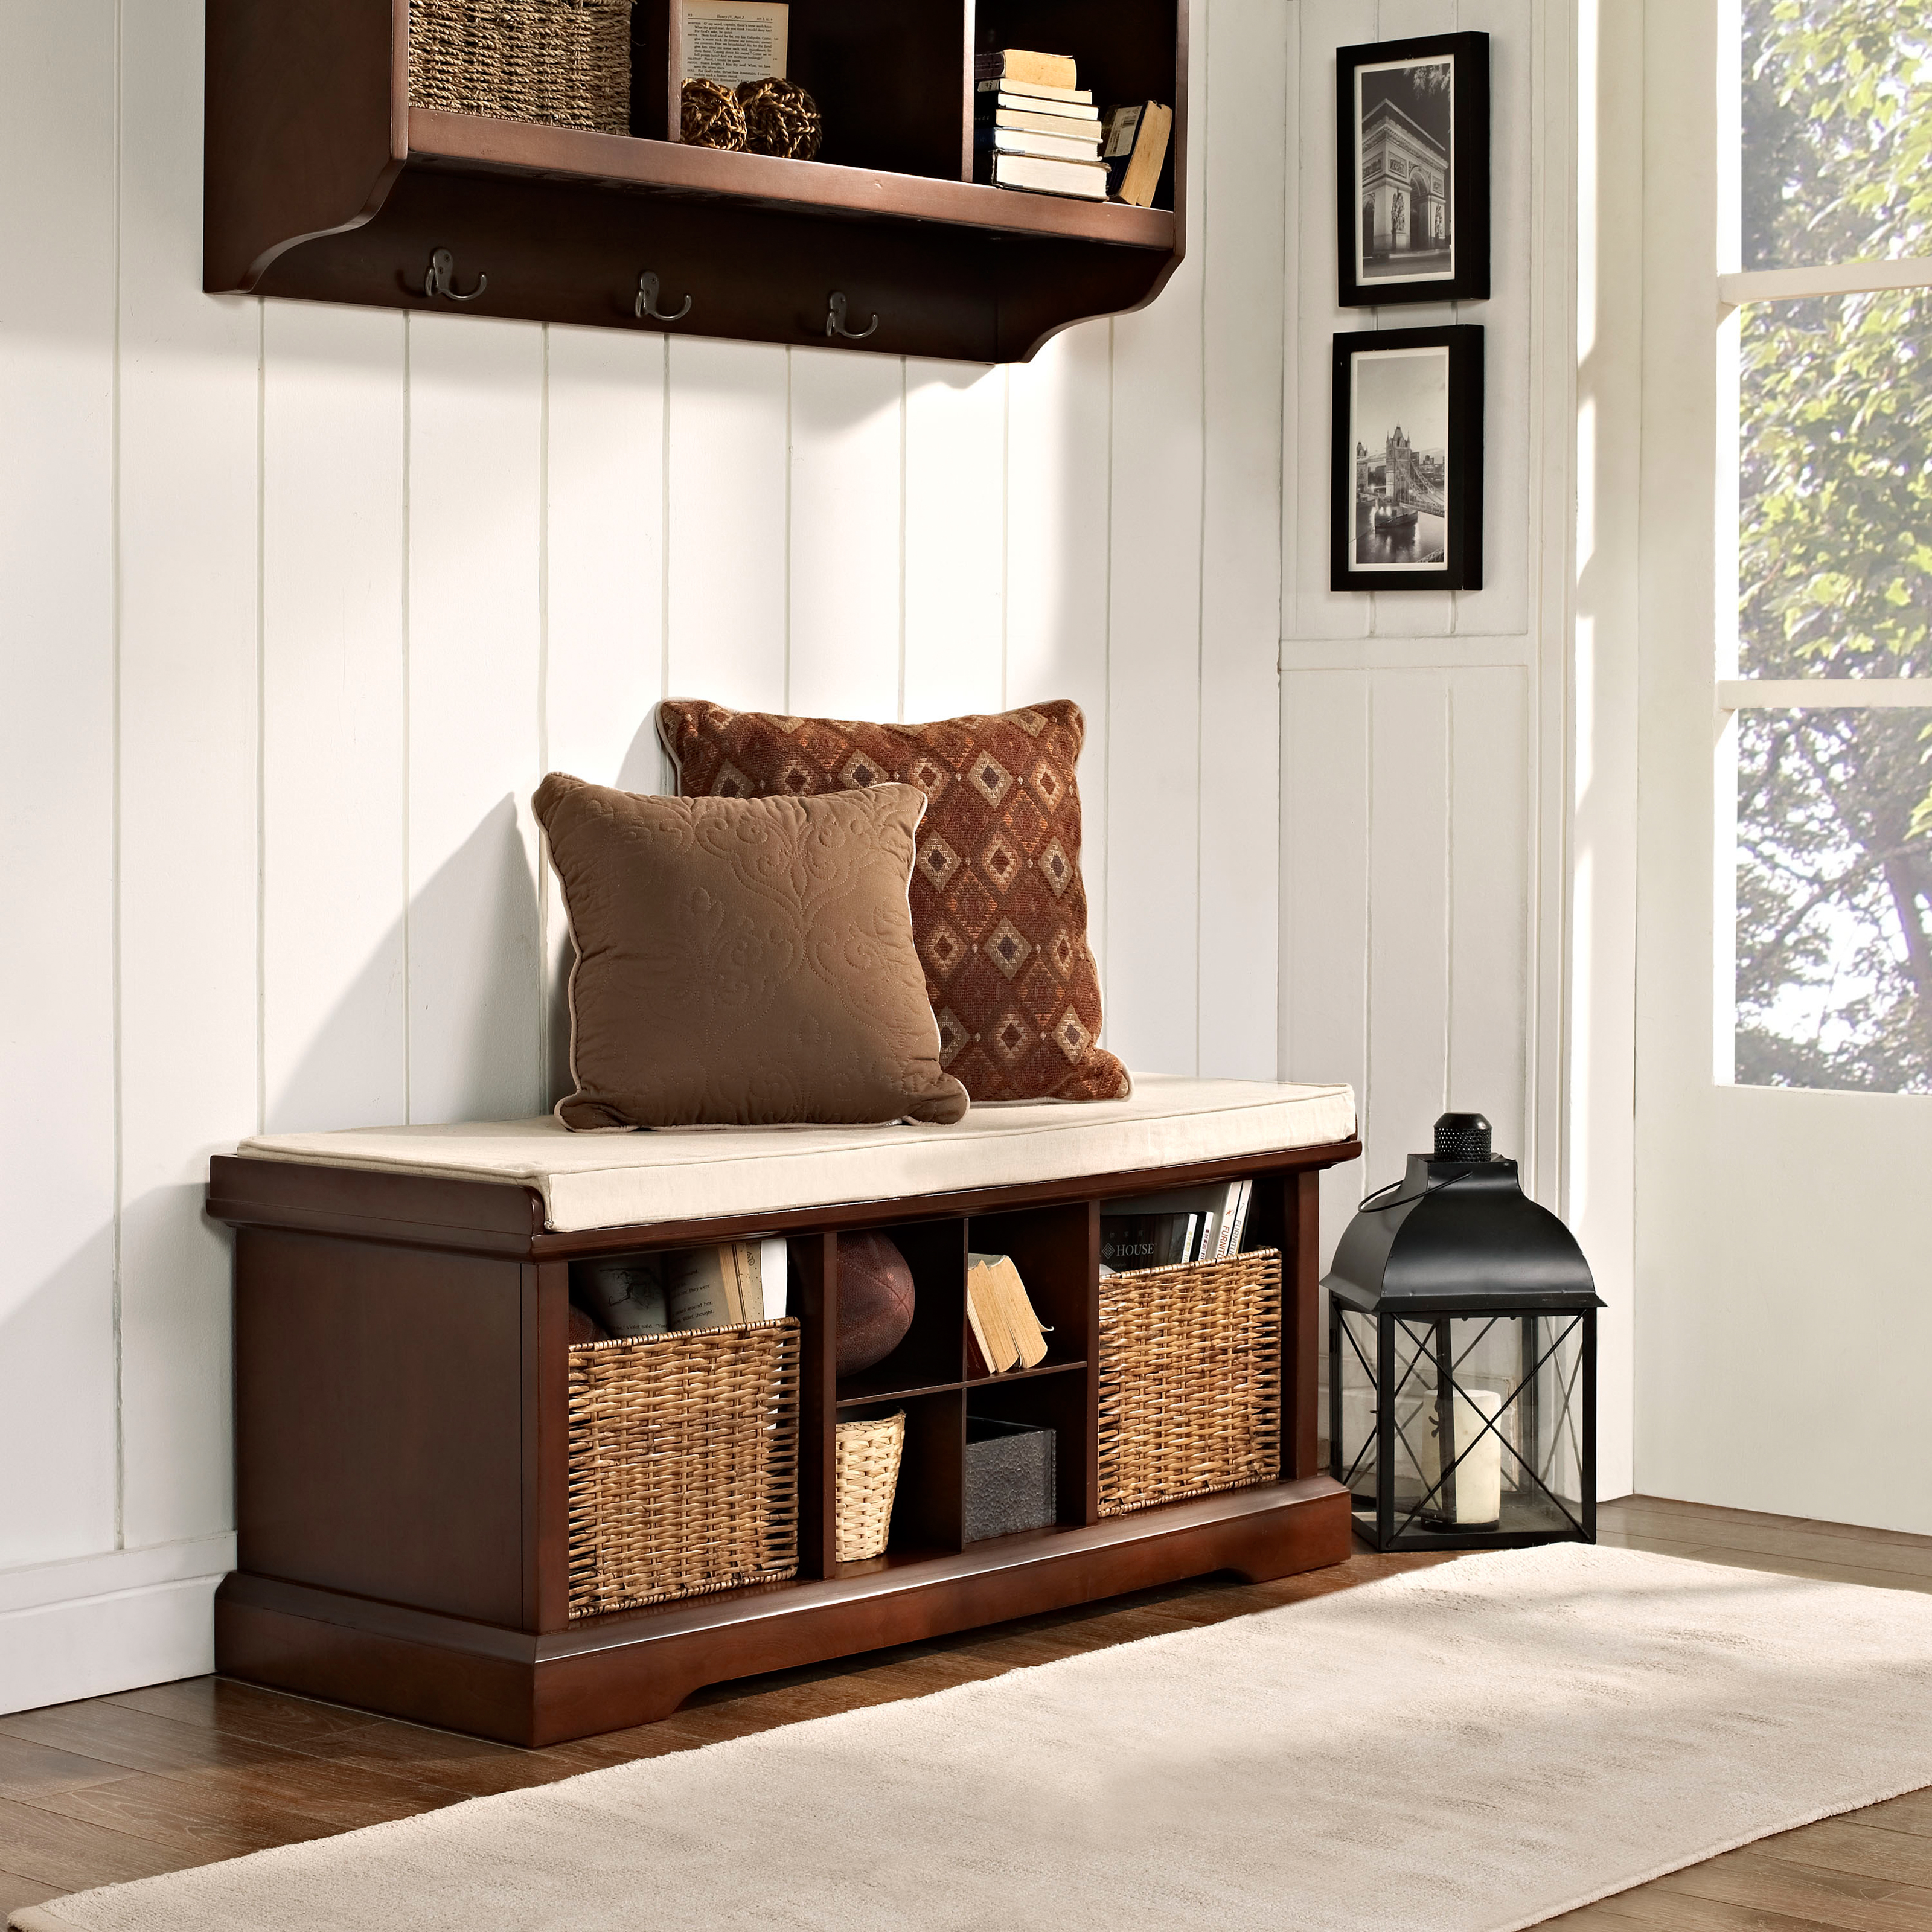 Crosley brennan entryway storage bench mahogany indoor for Decorating outdoor entryways